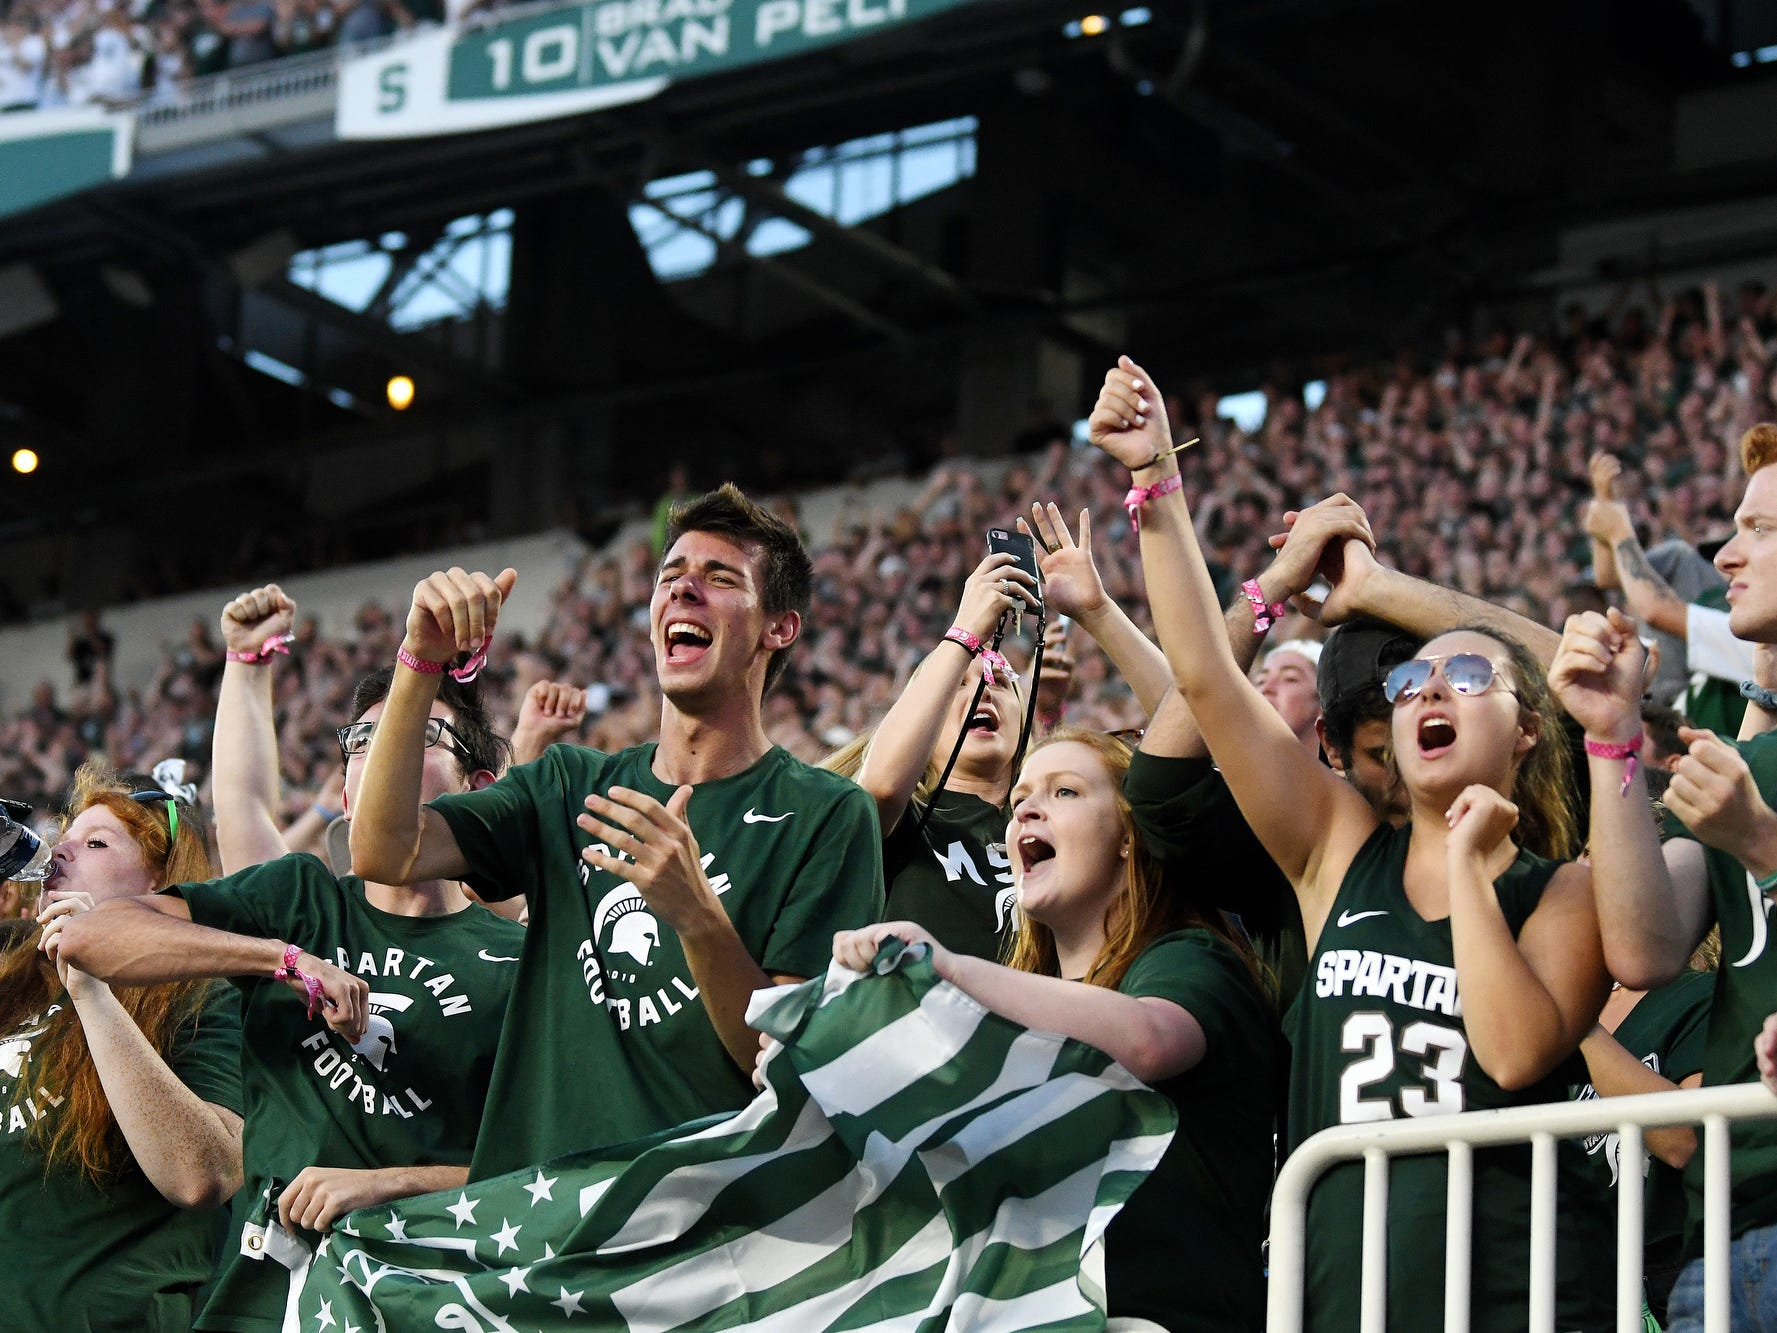 Michigan State fans celebrate after Cody White's touchdown during the second quarter on Friday, Aug. 31, 2018, at Spartan Stadium in East Lansing.